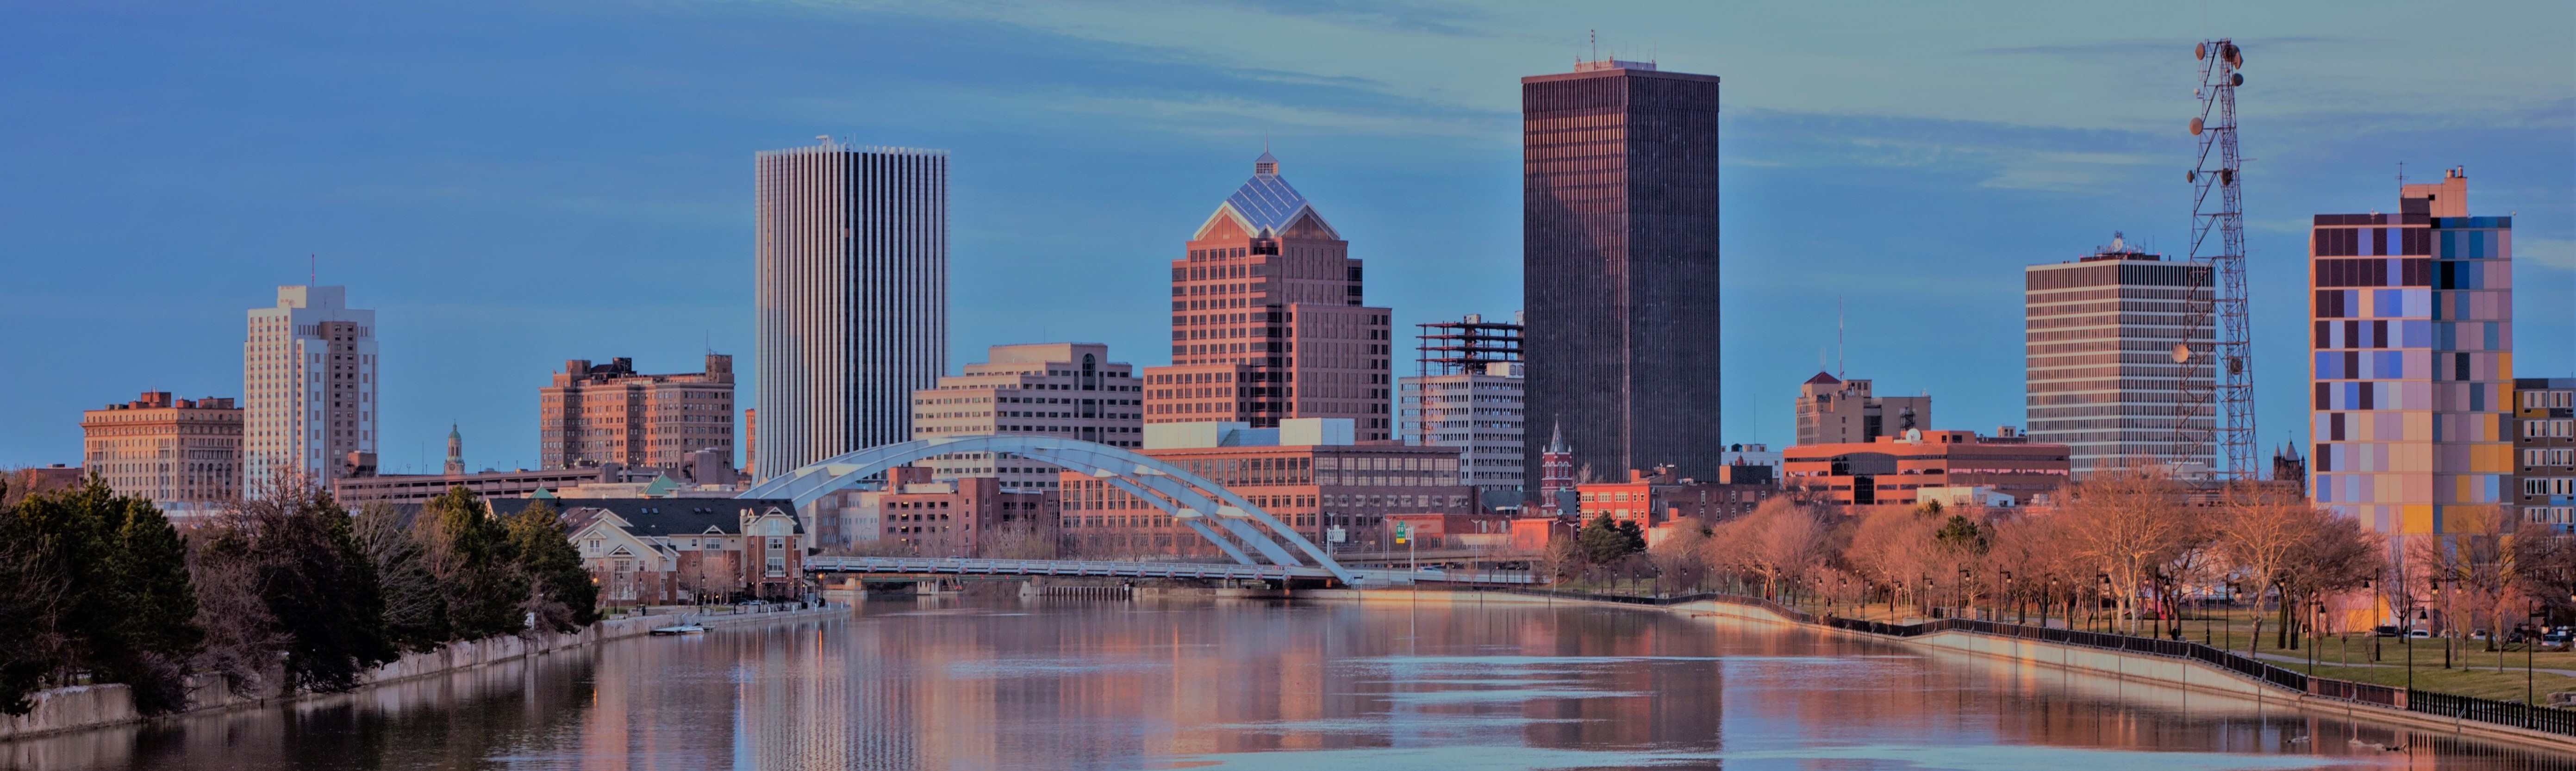 Rochester, NY-Skyline_Crop5